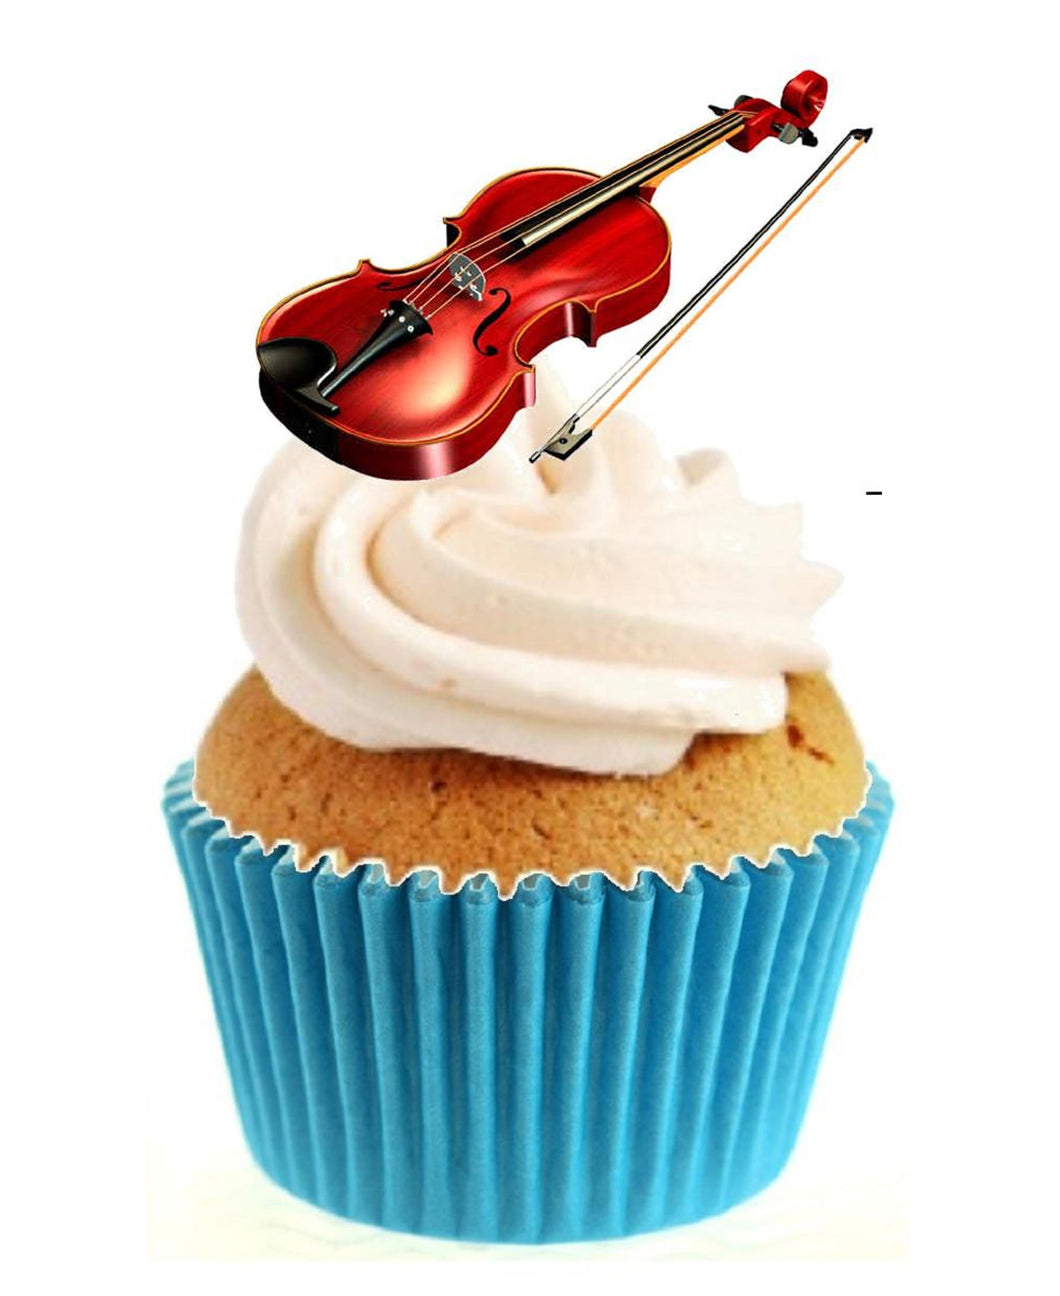 Violin Stand Up Cake Toppers (12 pack)